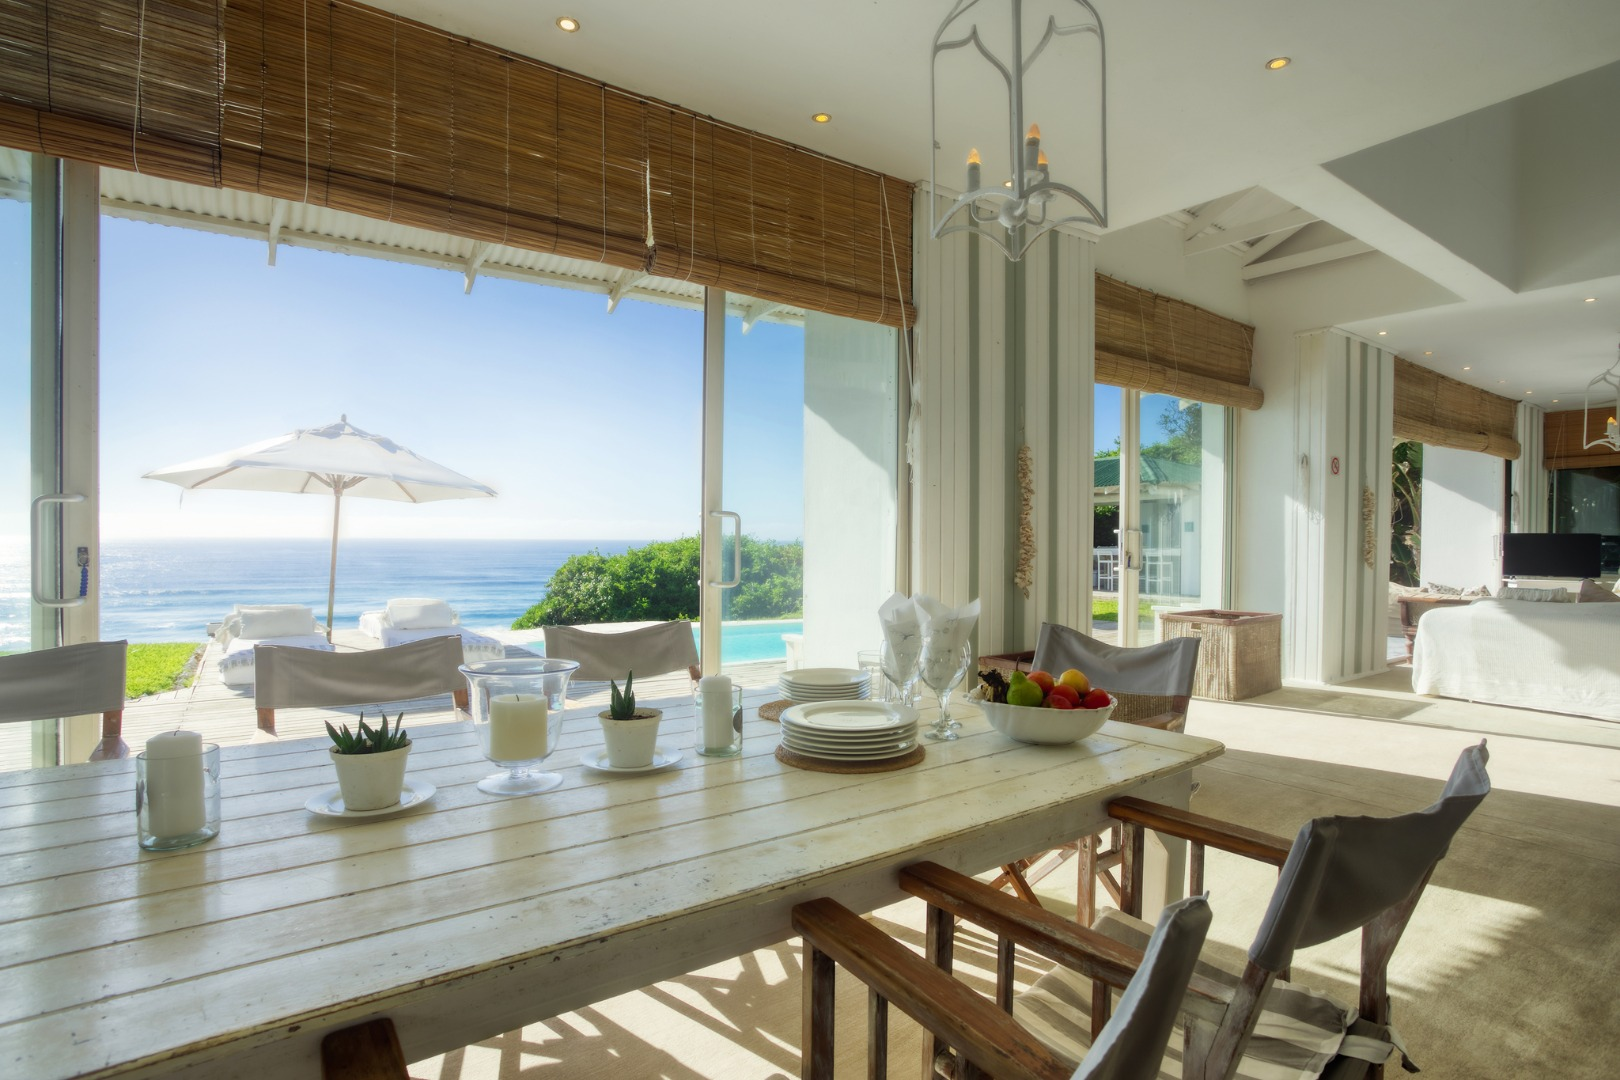 5 Bedroom House For Sale in Ponta Do Ouoro Central